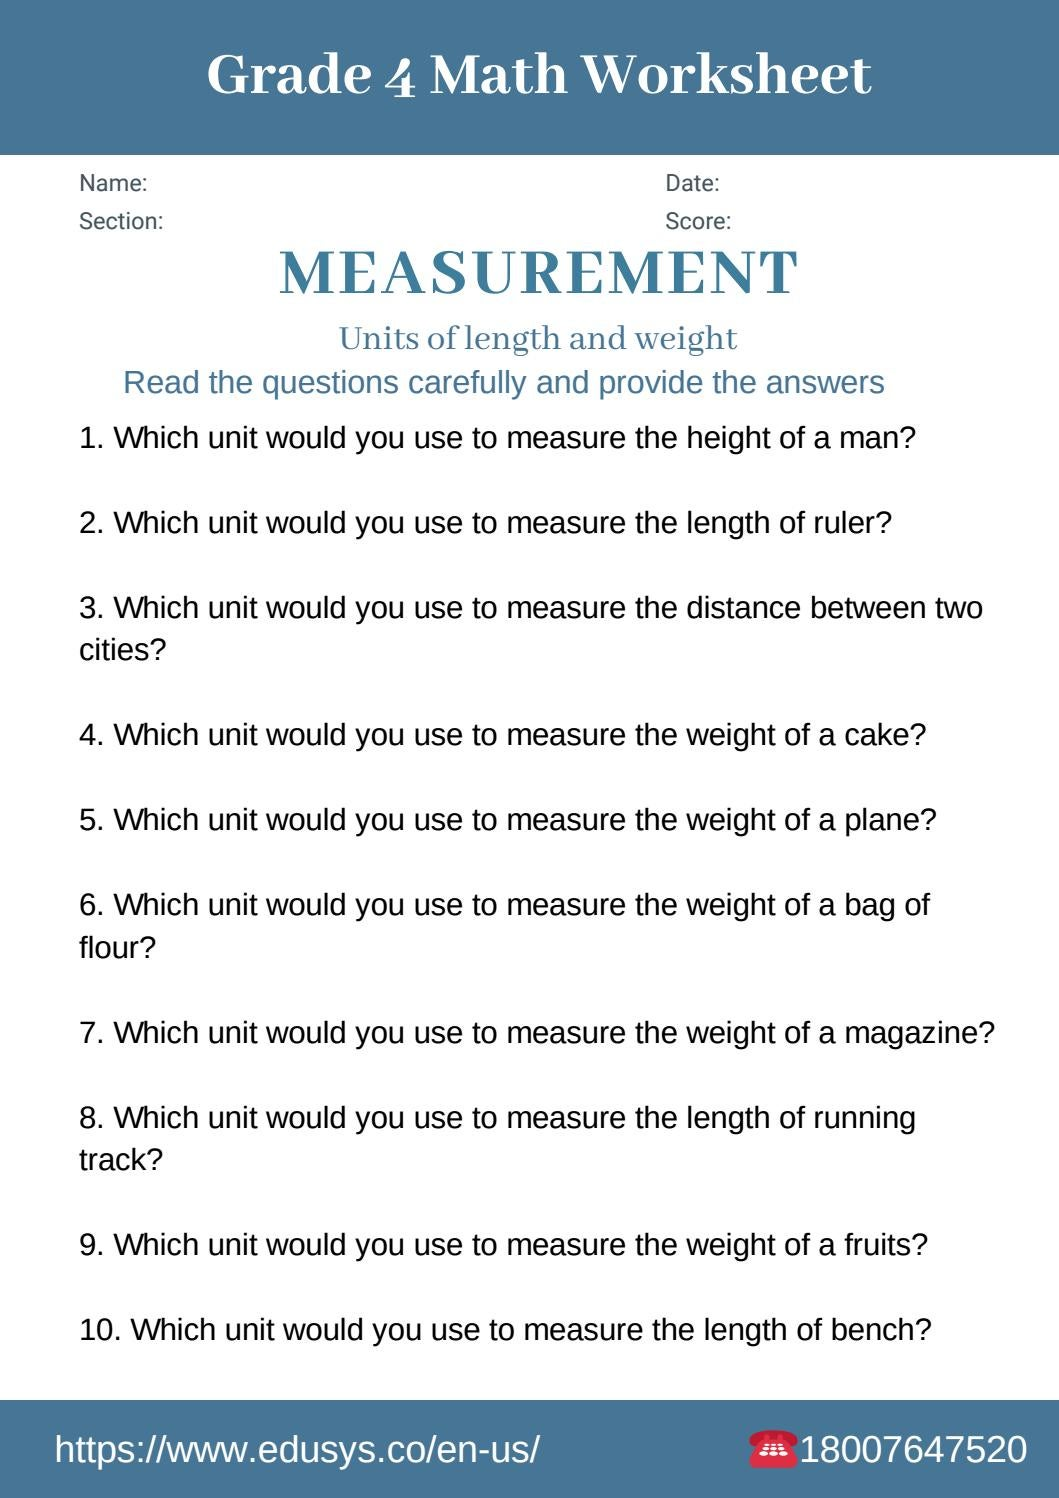 hight resolution of 4th grade math worksheet on measurements by nithya - issuu